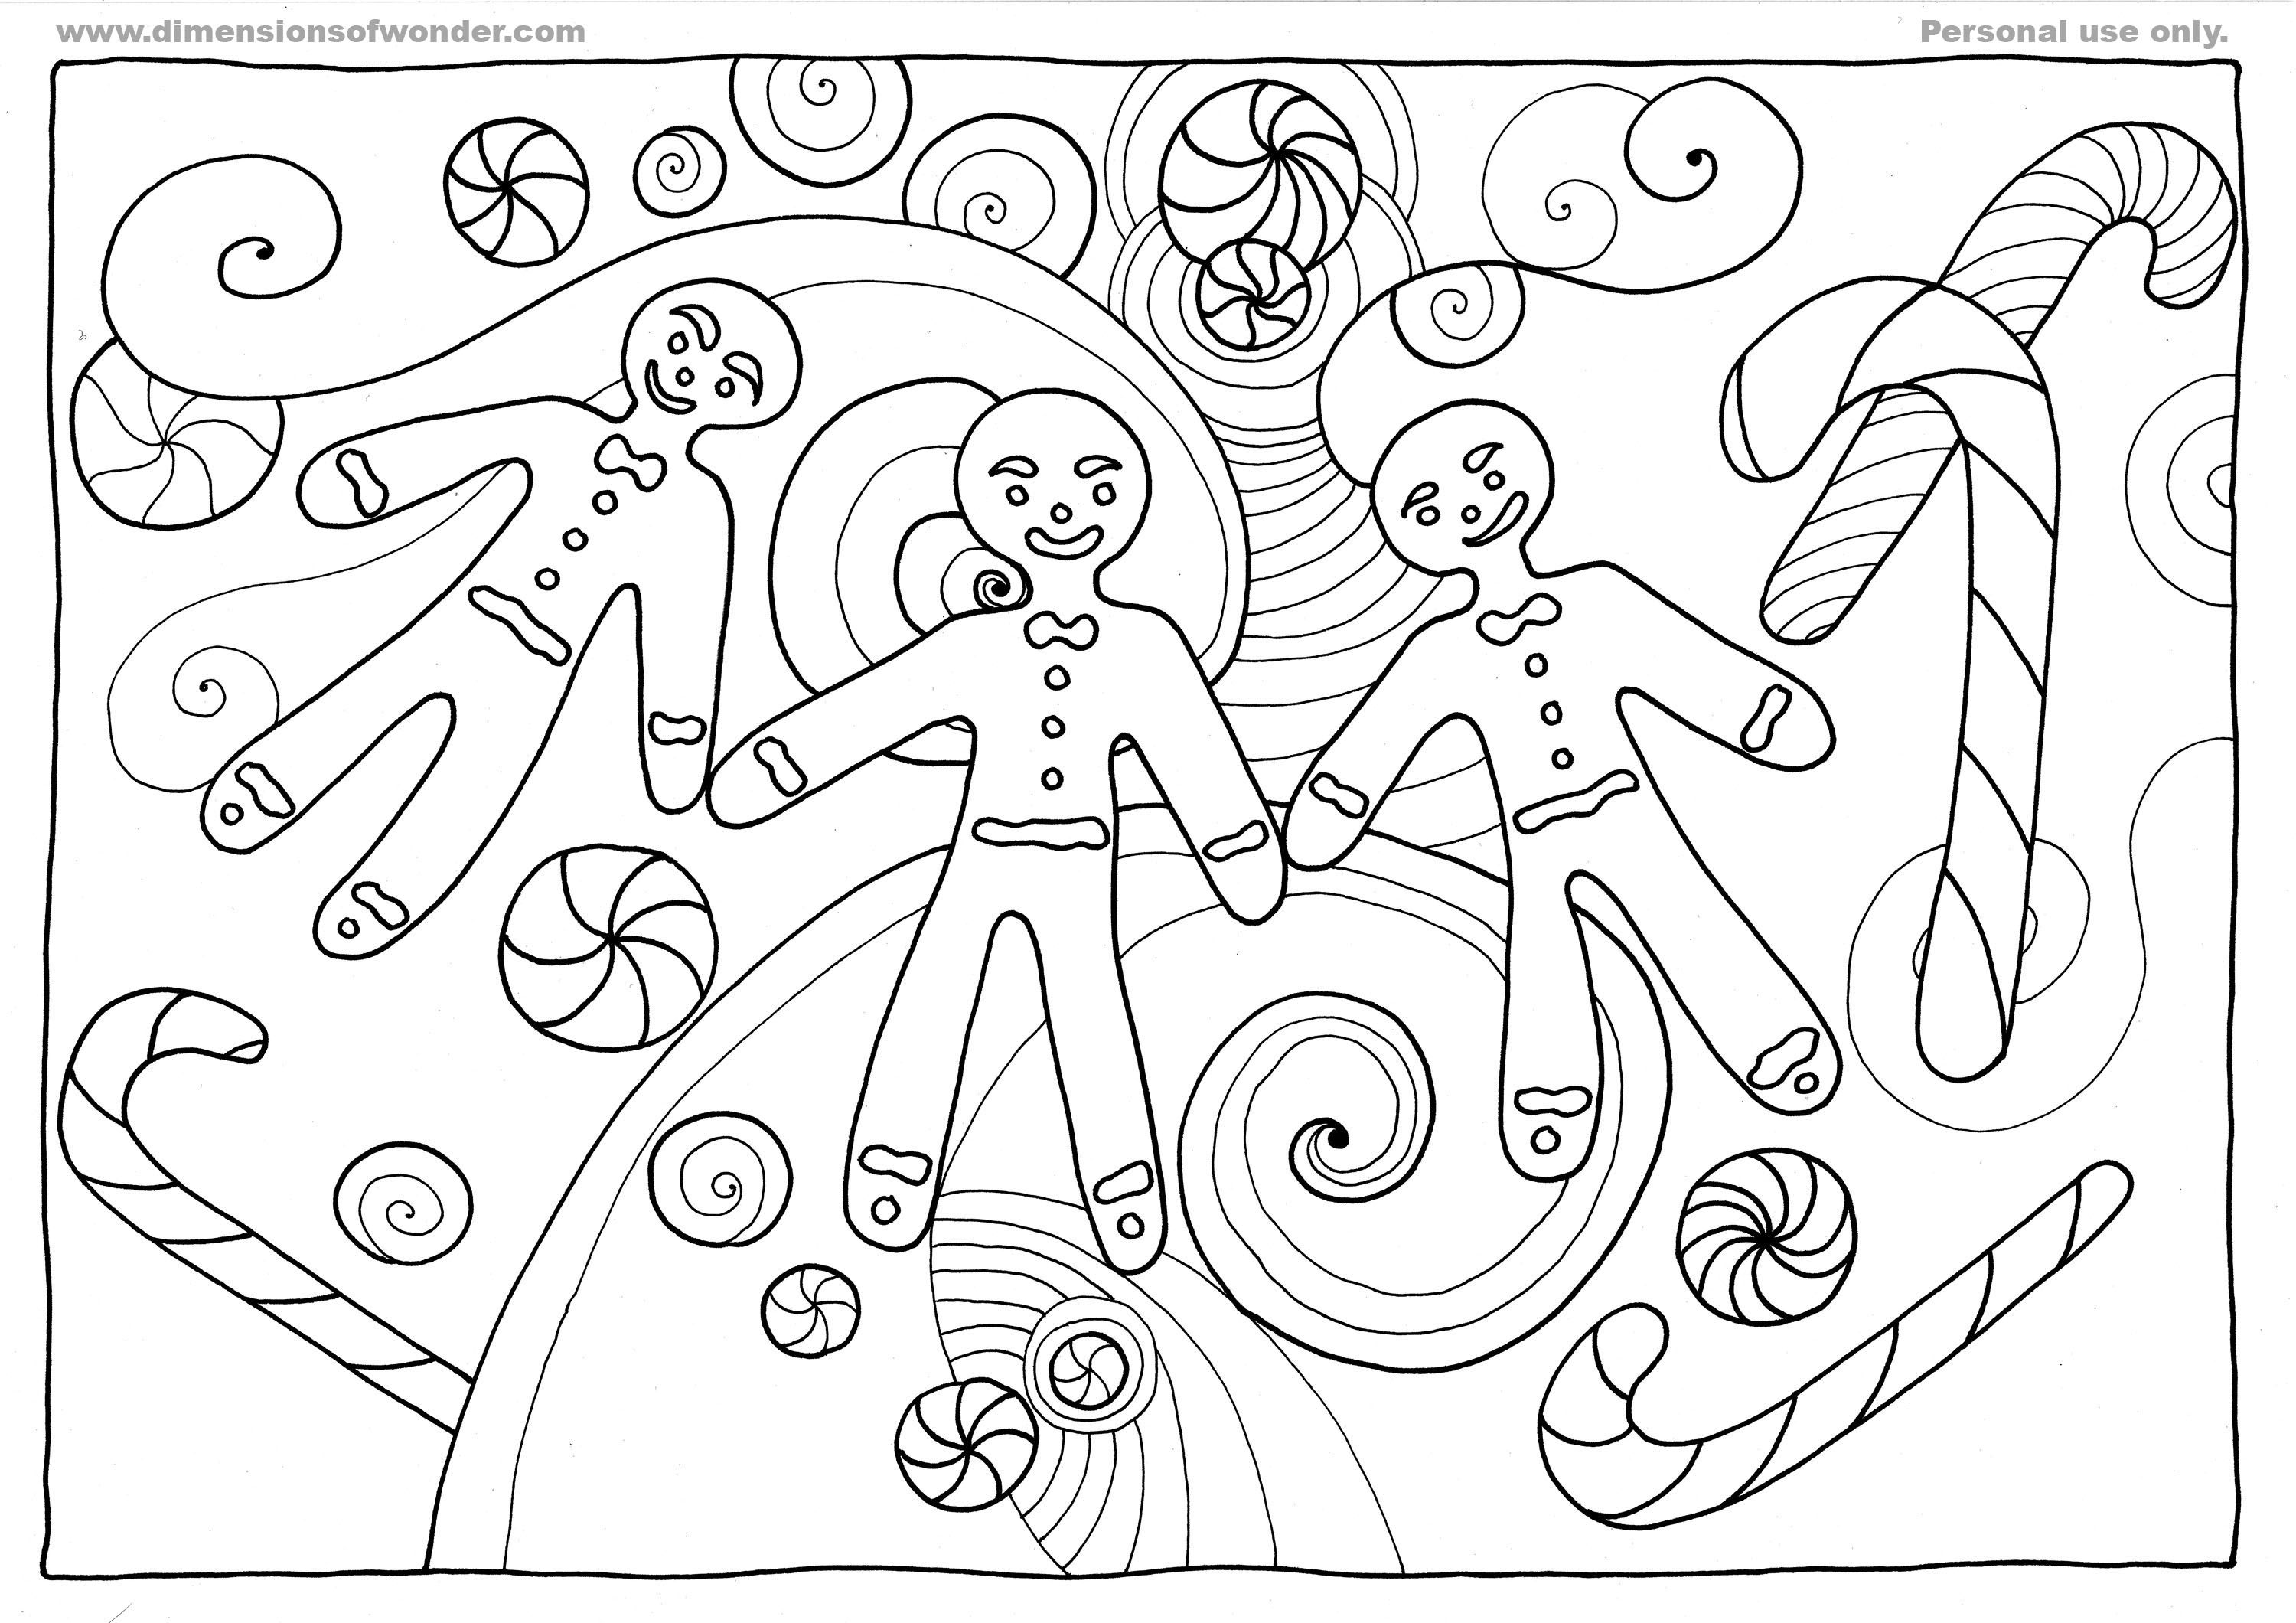 gingerbread man coloring pages printable coloring pages of gingerbread man story coloring home man gingerbread coloring pages printable